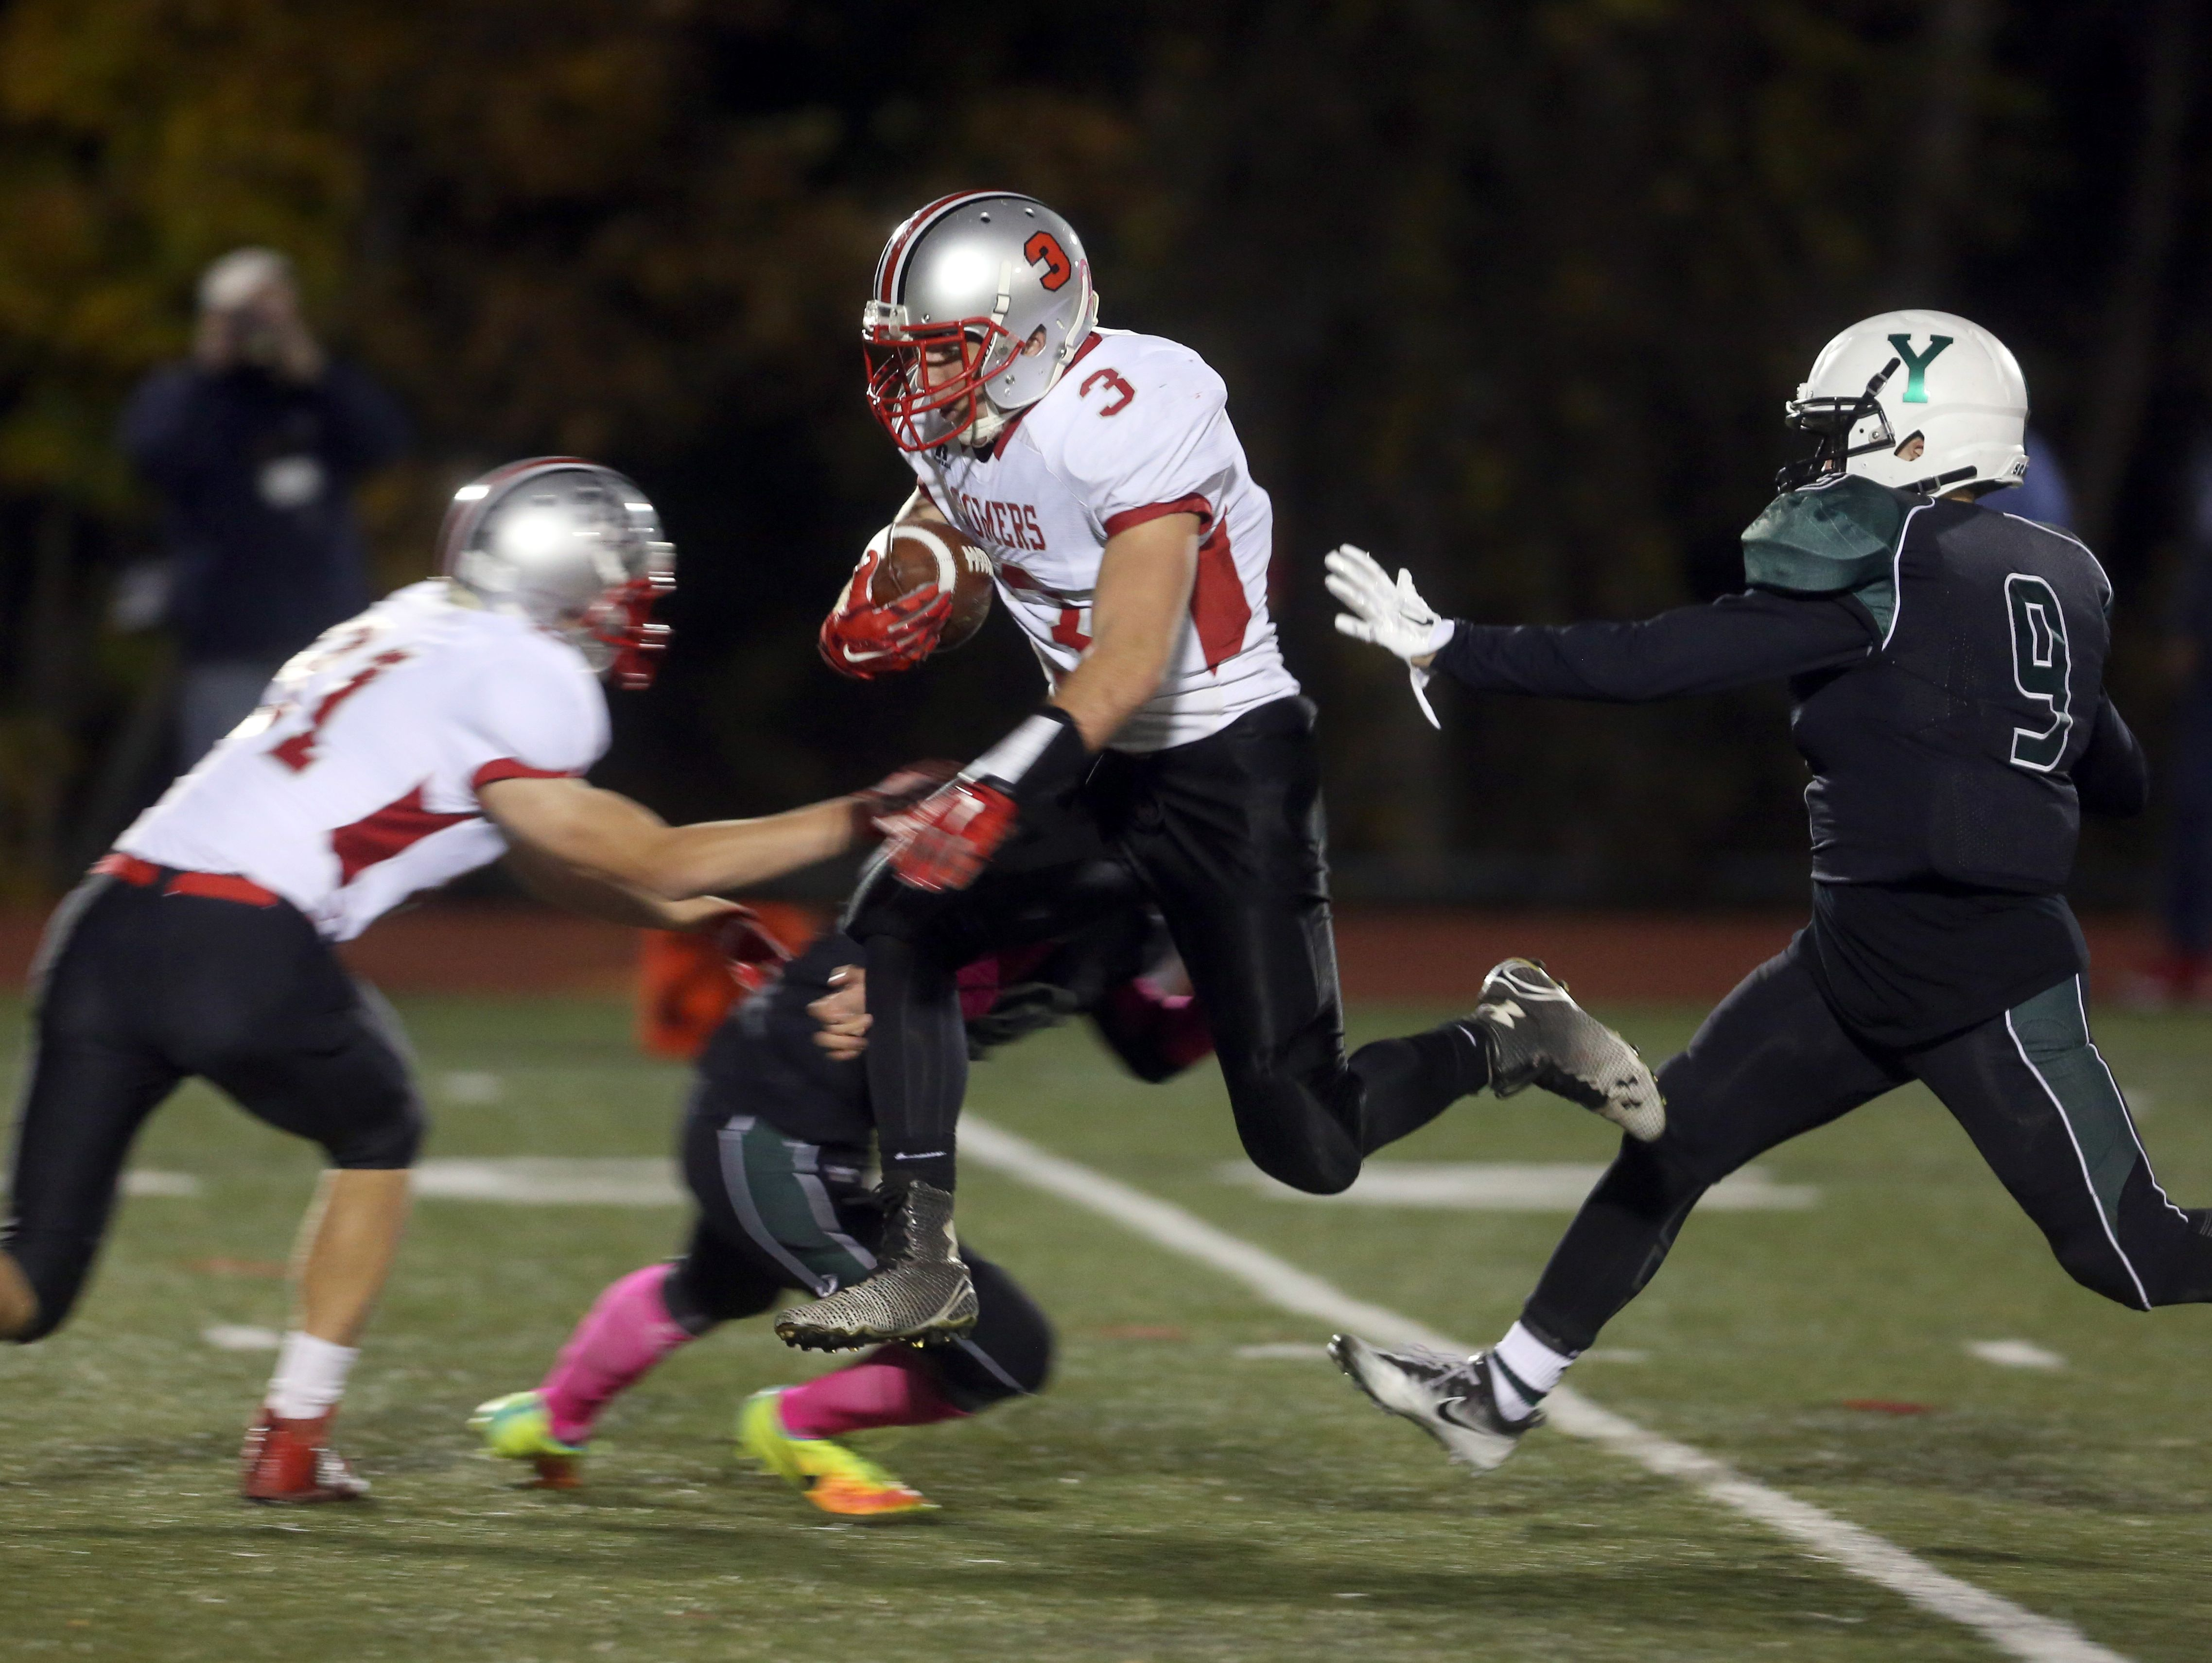 Matthew Pires of Somers gets airborne on his way to a 60-yard punt return against Yorktown during the Section 1 Class A football championship at Mahopac High School Nov. 6, 2016.